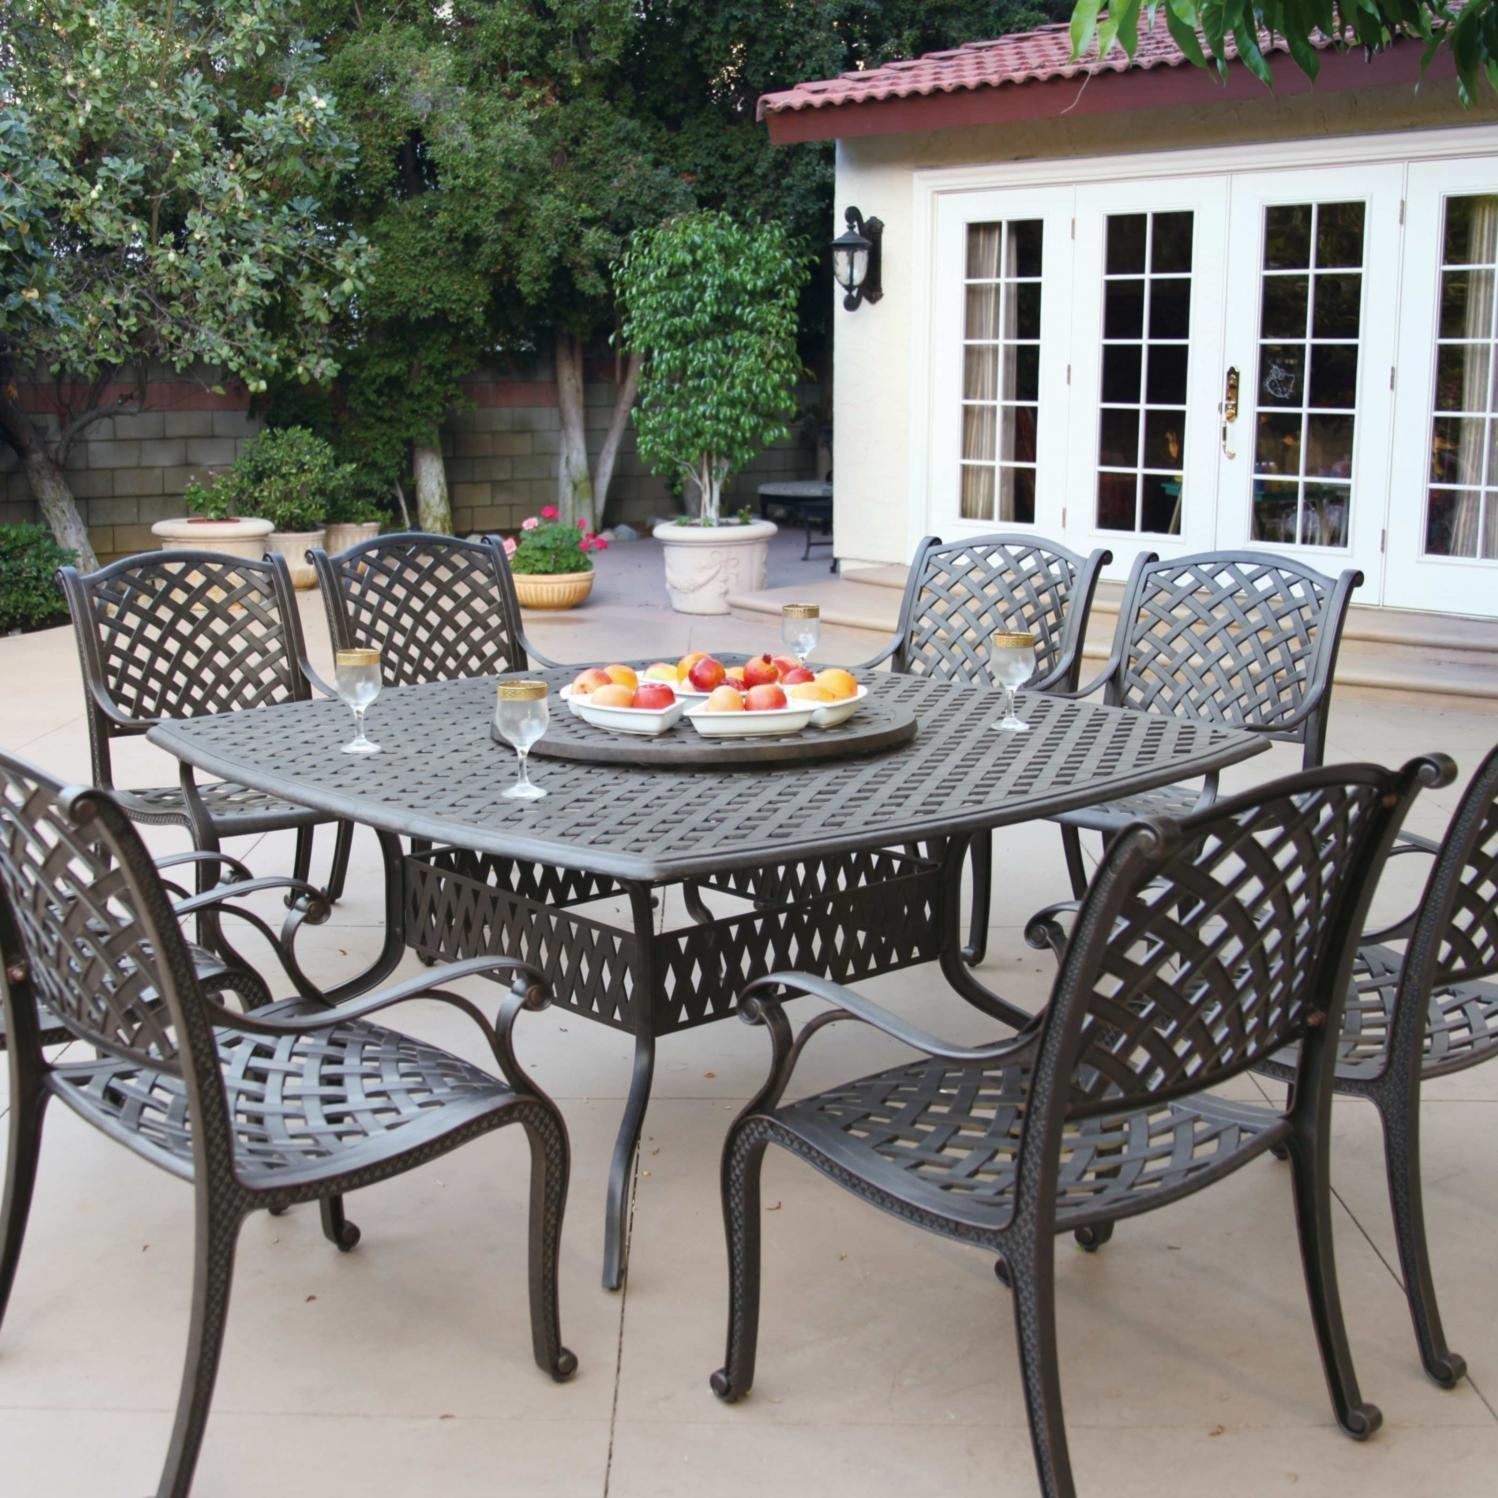 patio dining sets discount pictures. Black Bedroom Furniture Sets. Home Design Ideas